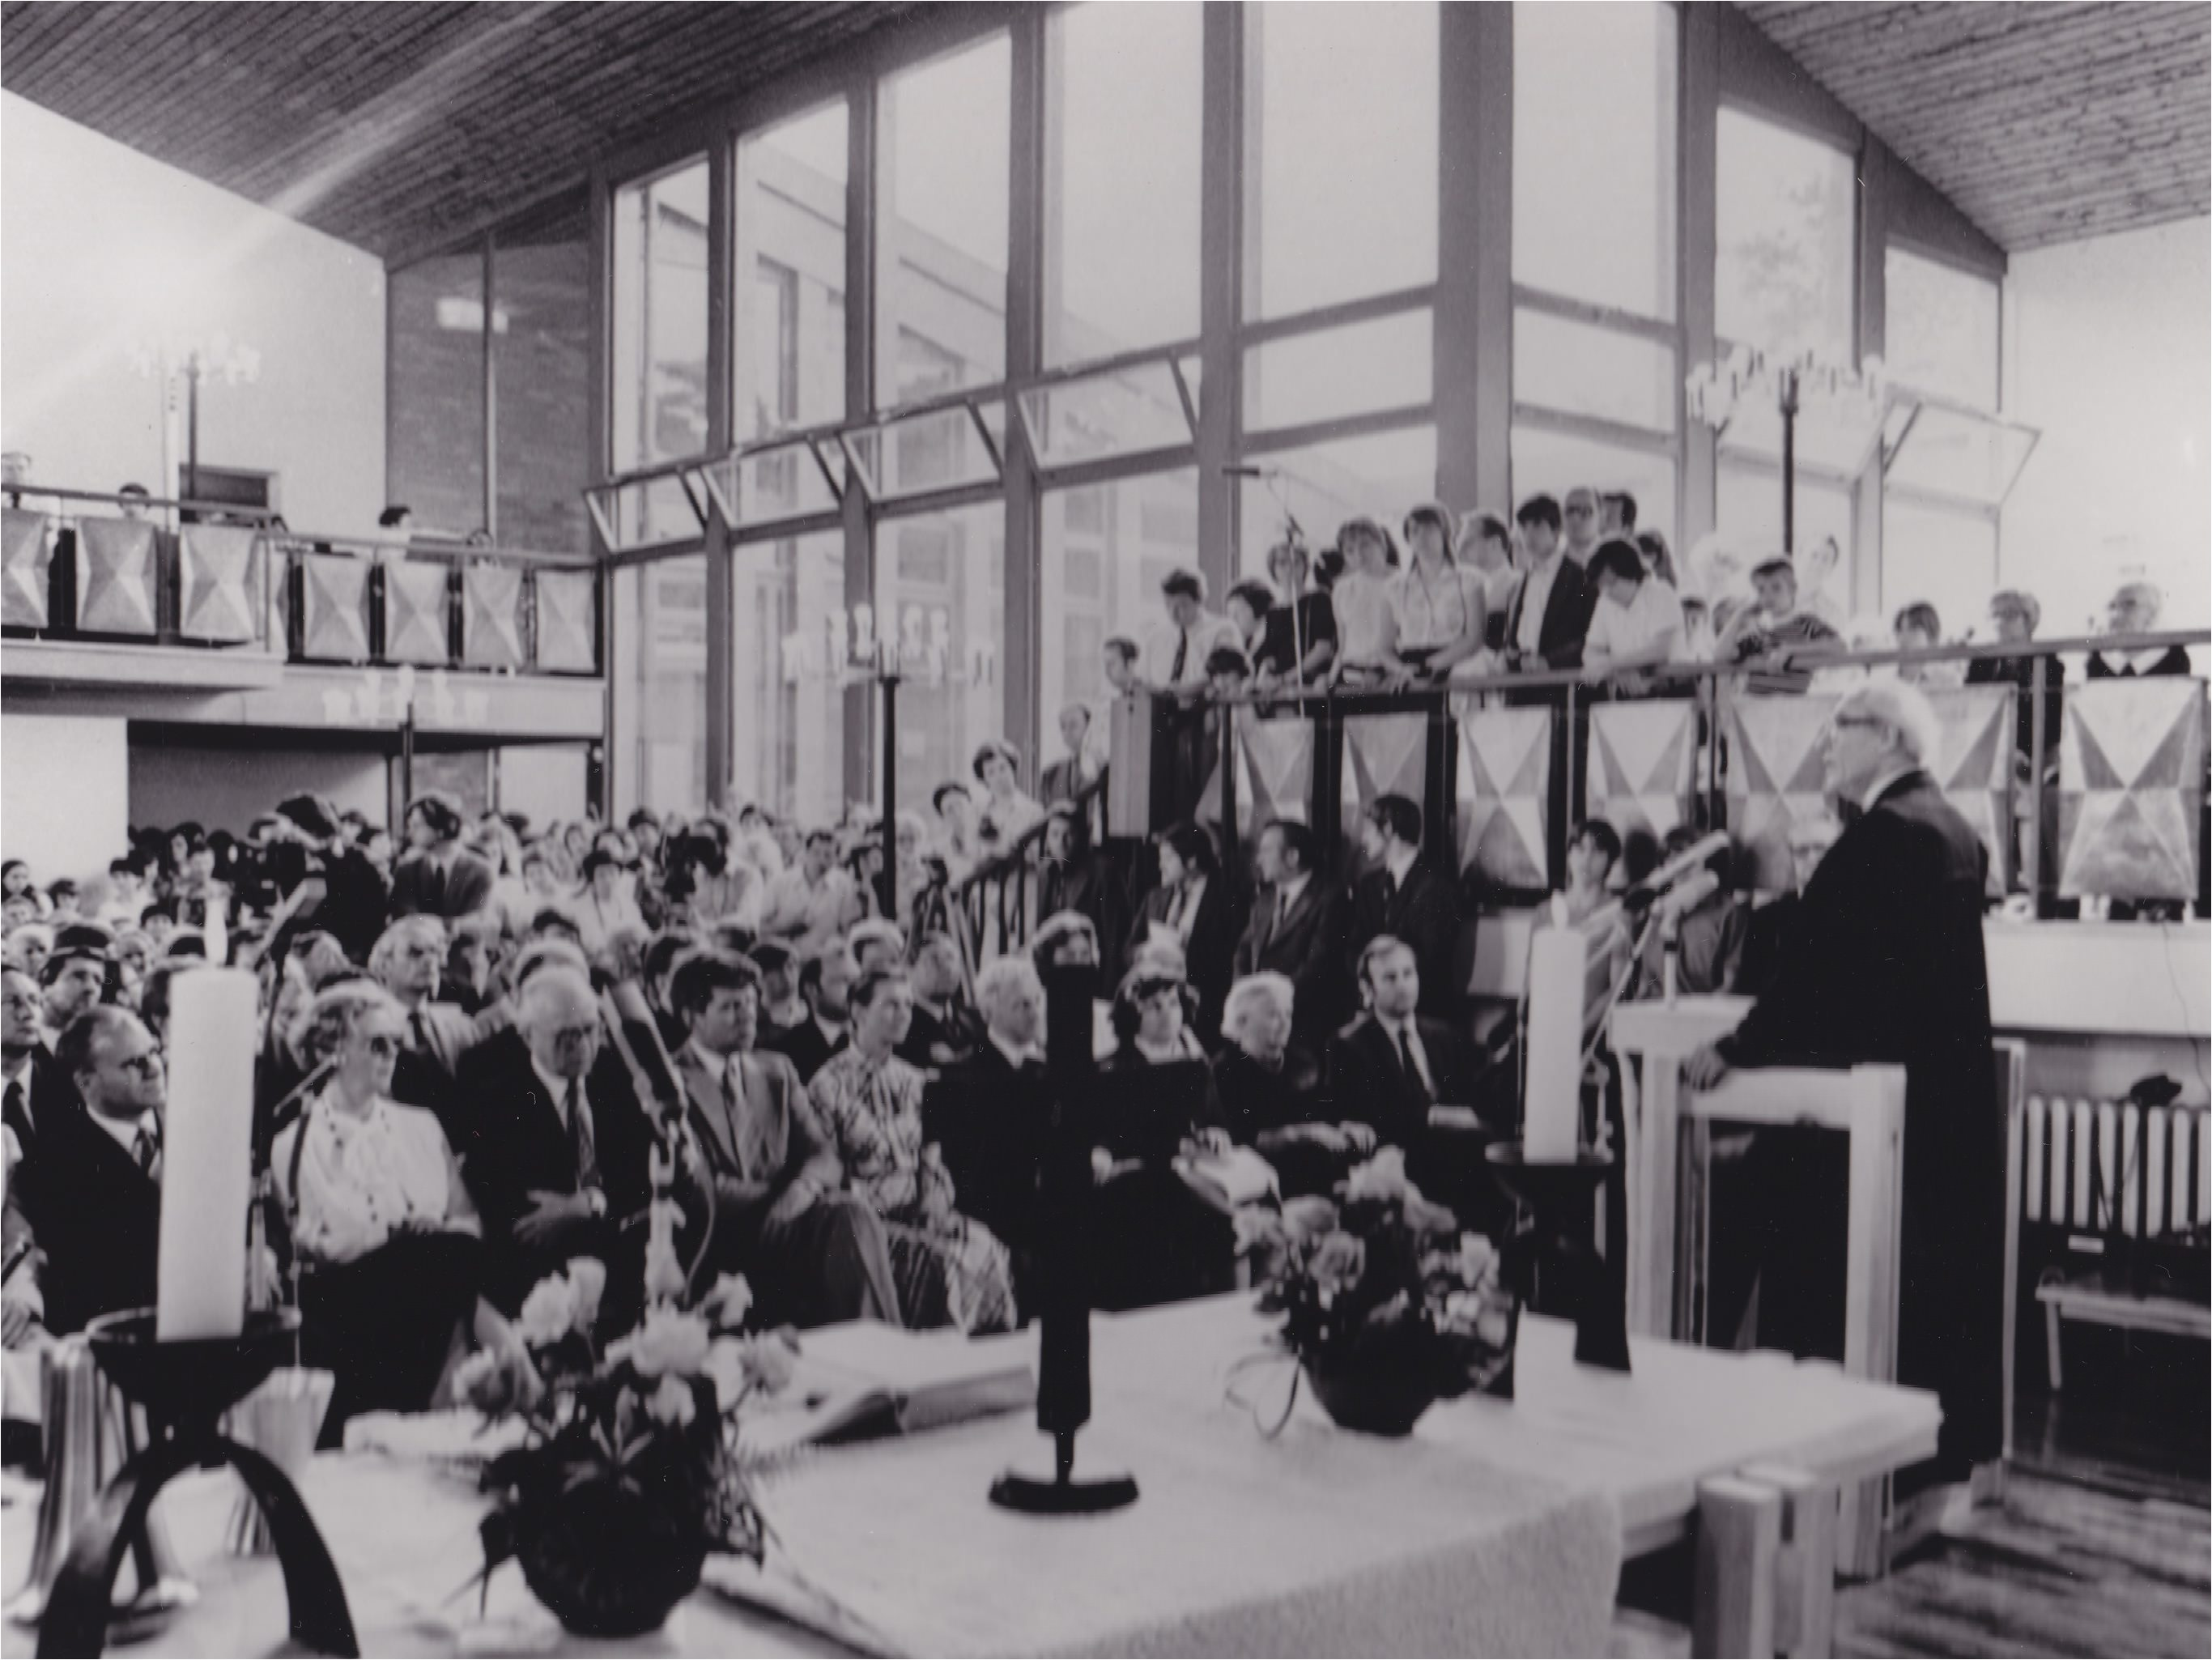 Photo of the 1981 consecration of an East German Evangelical church in East Germany